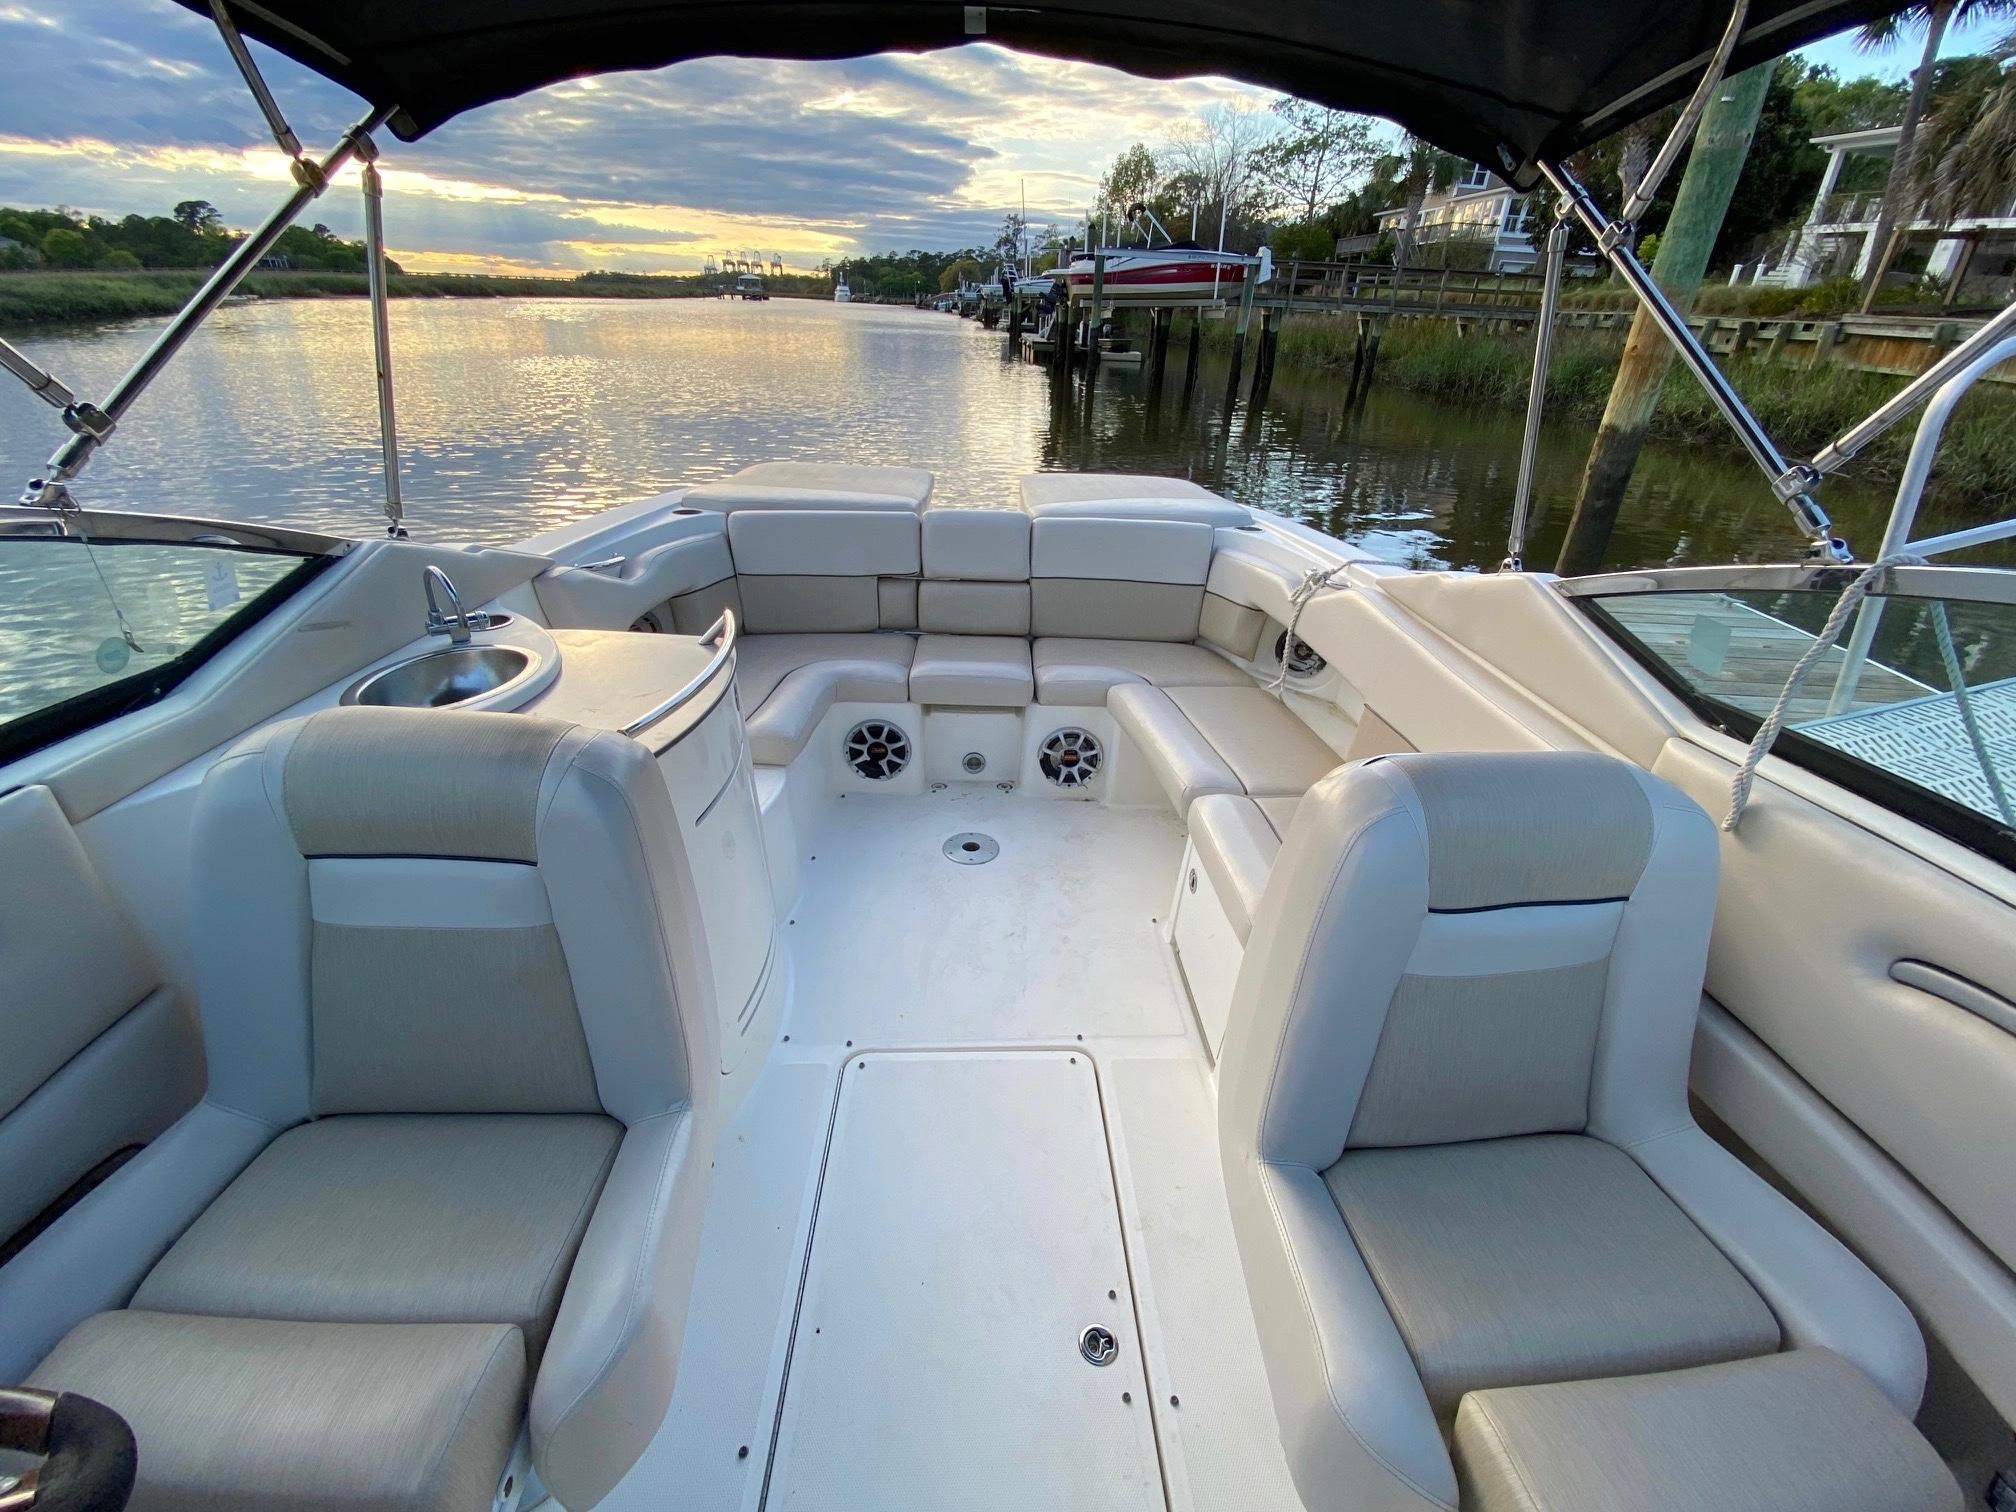 Sea Ray 270 SLX - Center Walkway